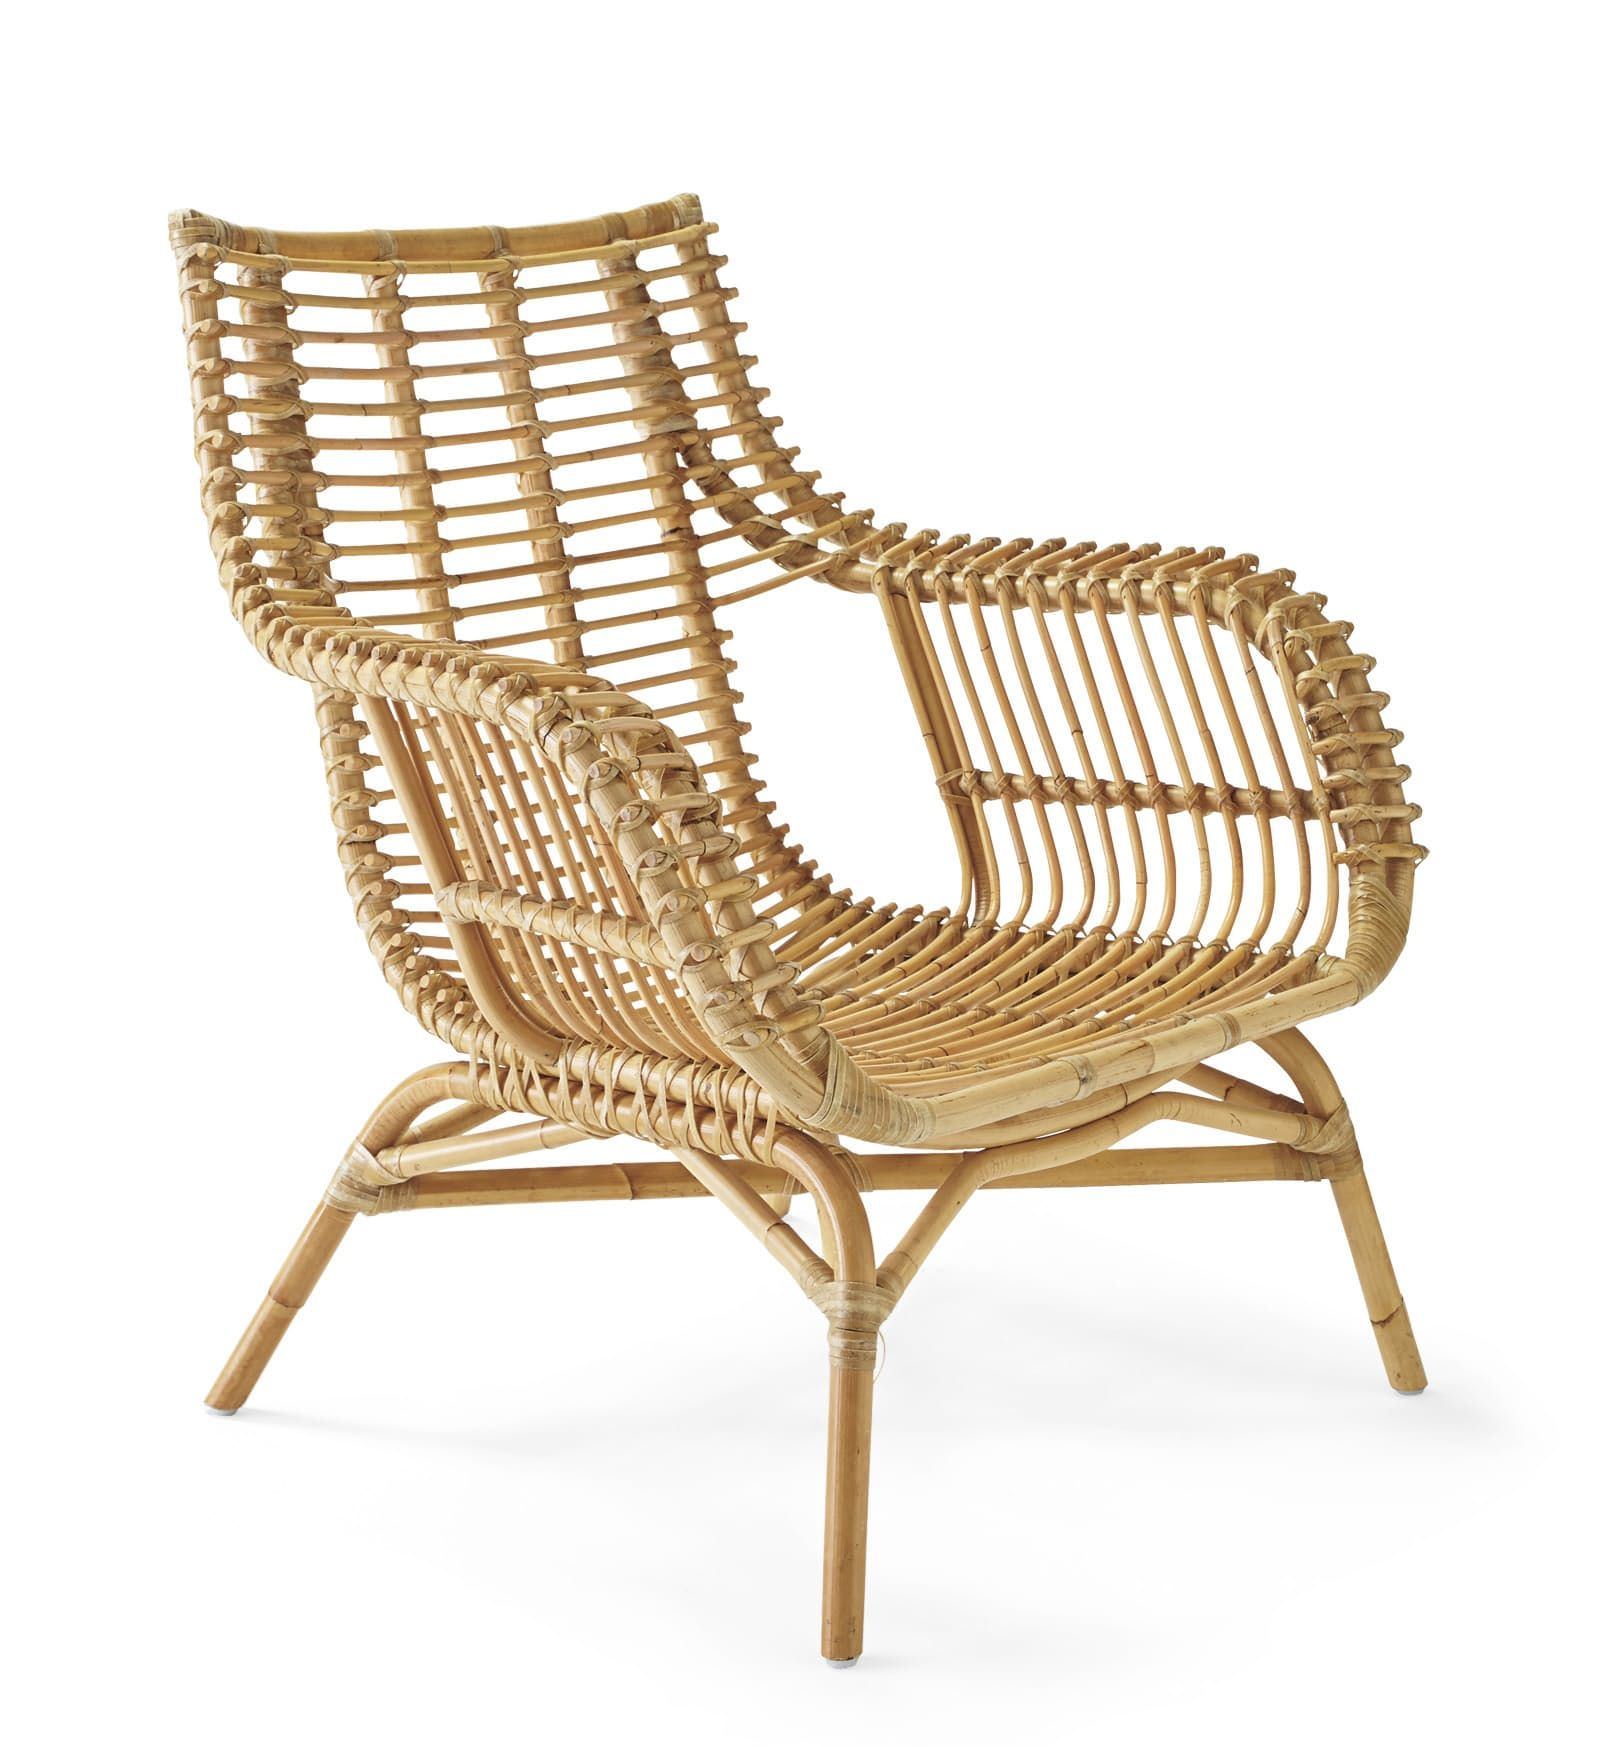 12 of Our Favorite Rattan & Wicker Chairs Sure to Bring a